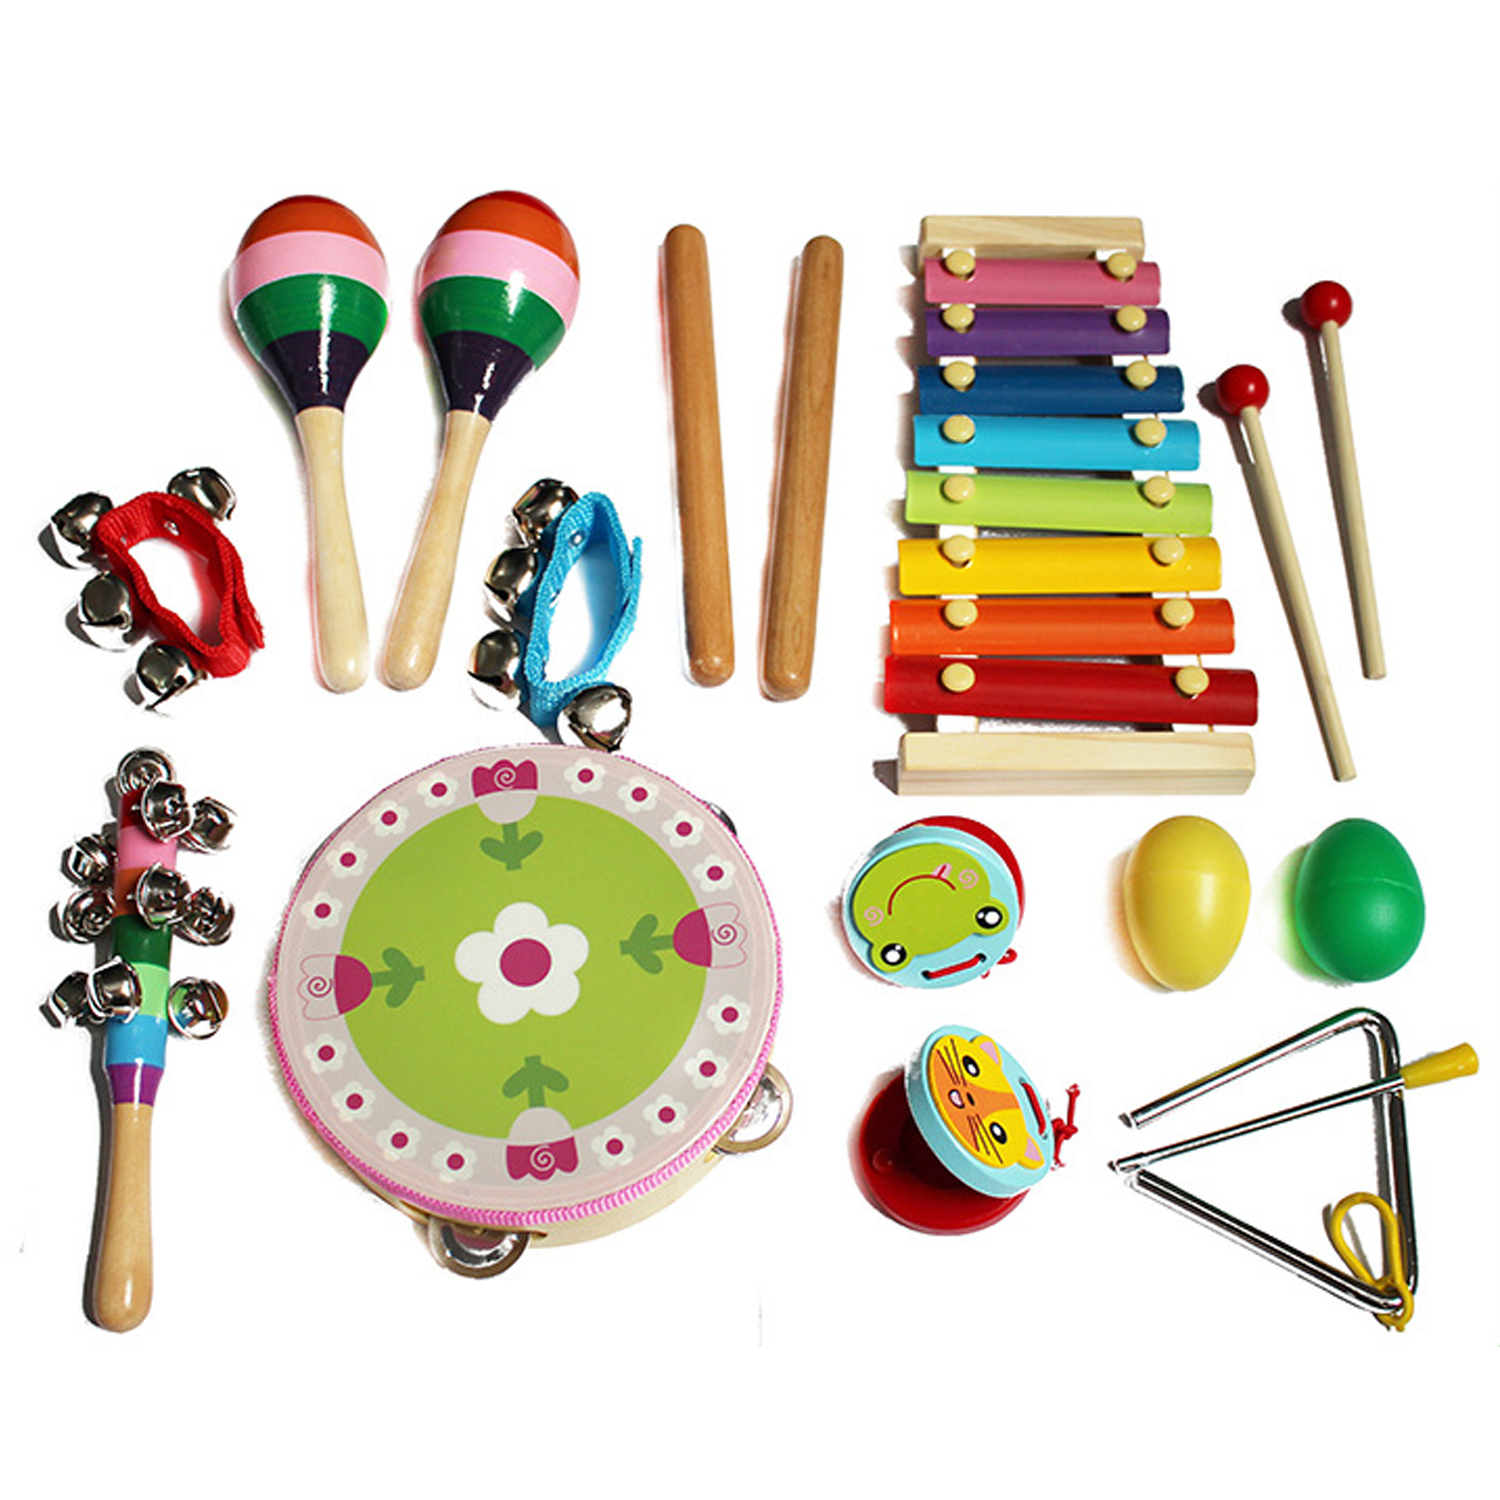 Plastic Rattle Musical Percussion Instrument Toy for Kids Educational Toy